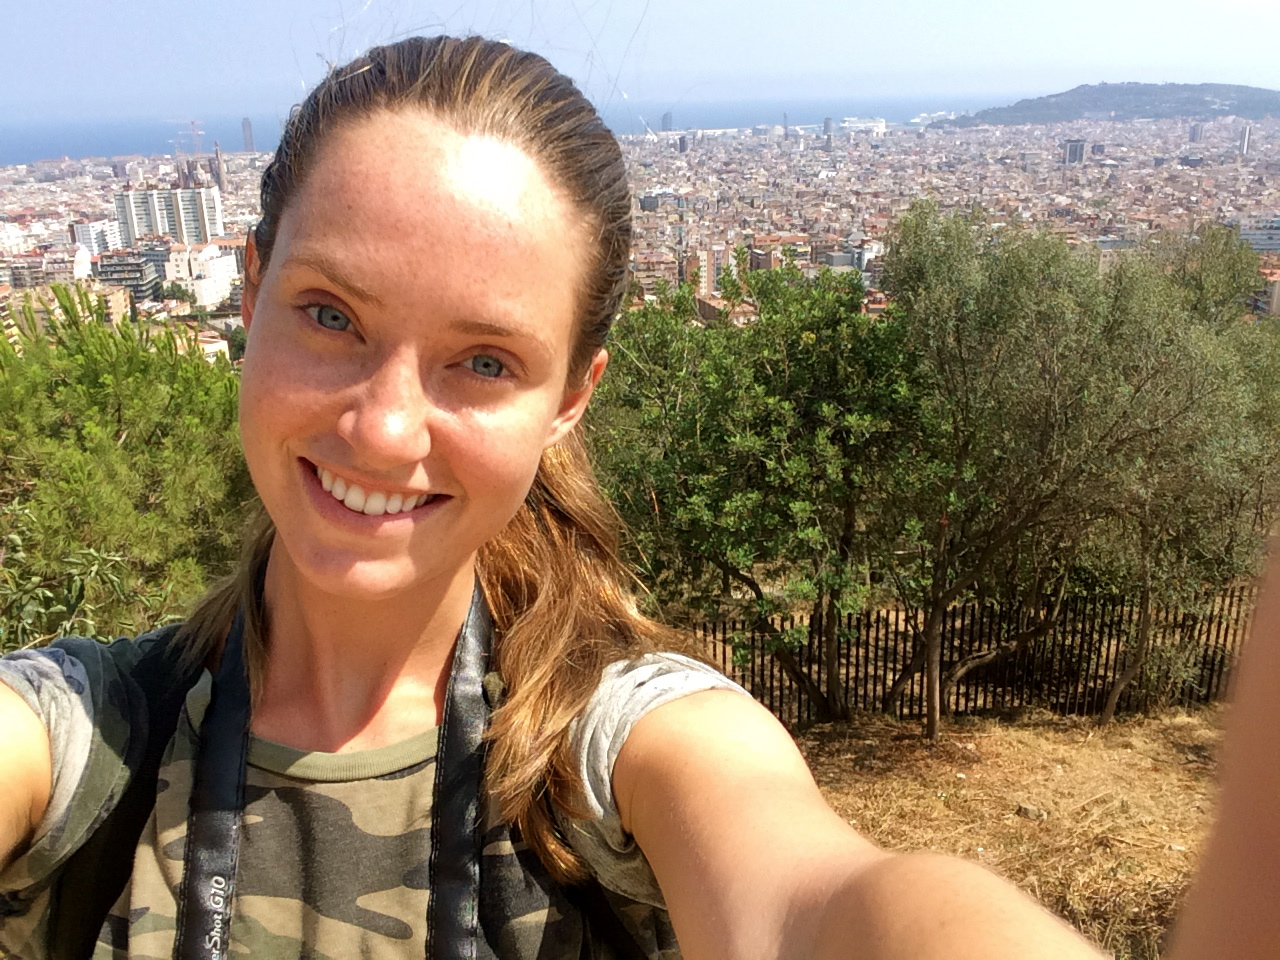 ◆  Ultimate tourist at the top of Park Guell over looking Barcelona